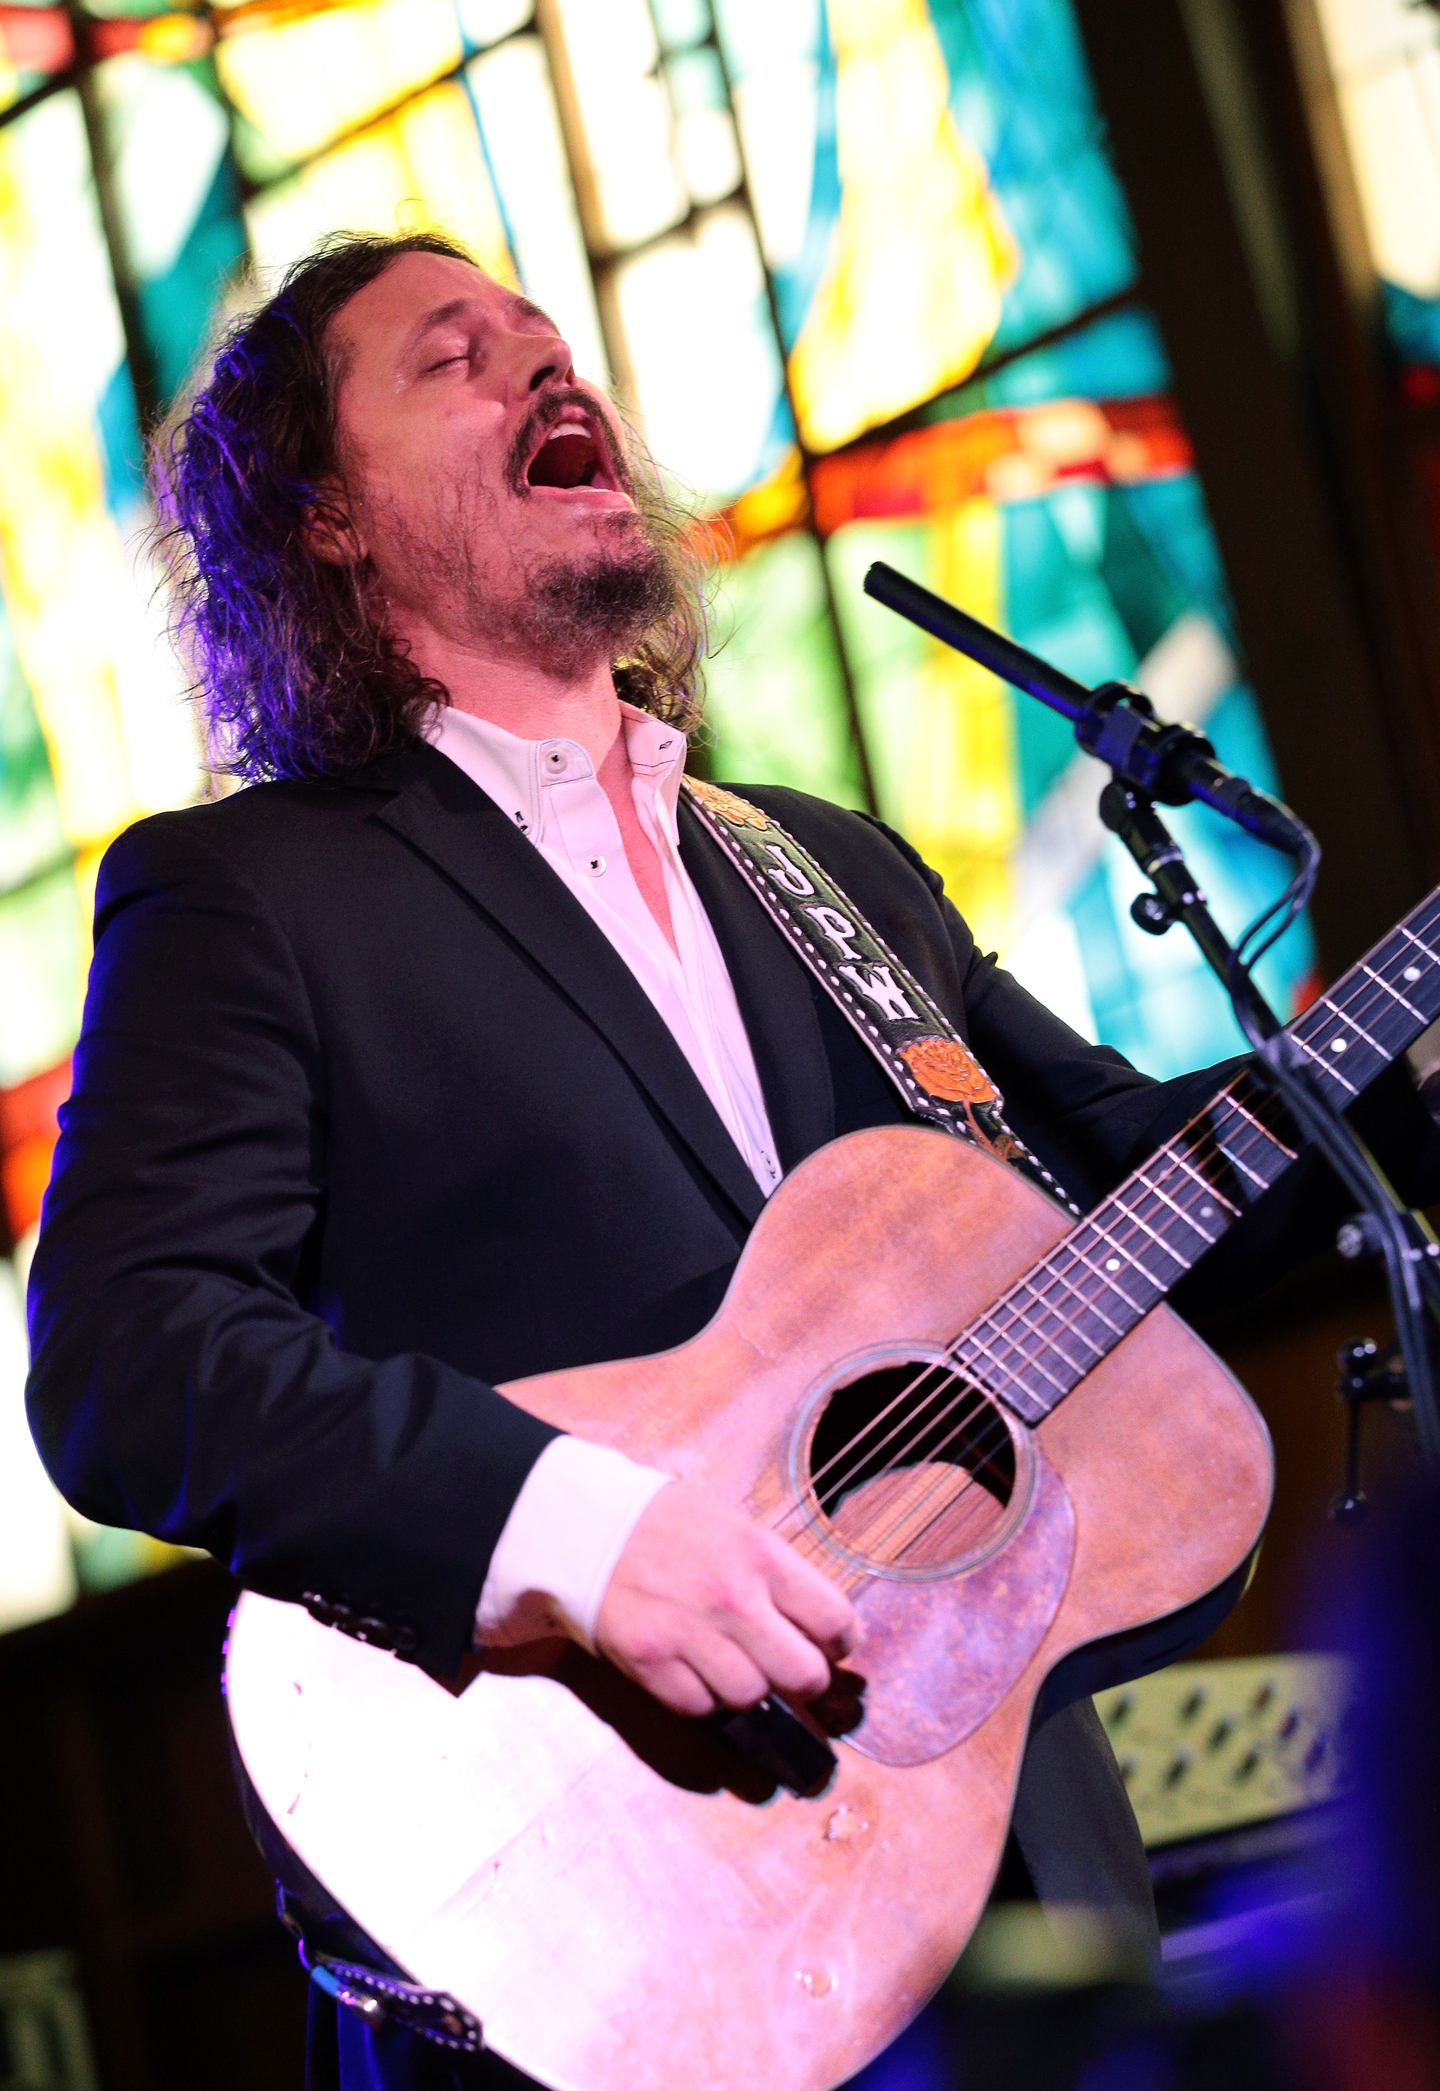 John Paul White performs onstage at NPR Tiny Desk Concert at Central Presbyterian Church.